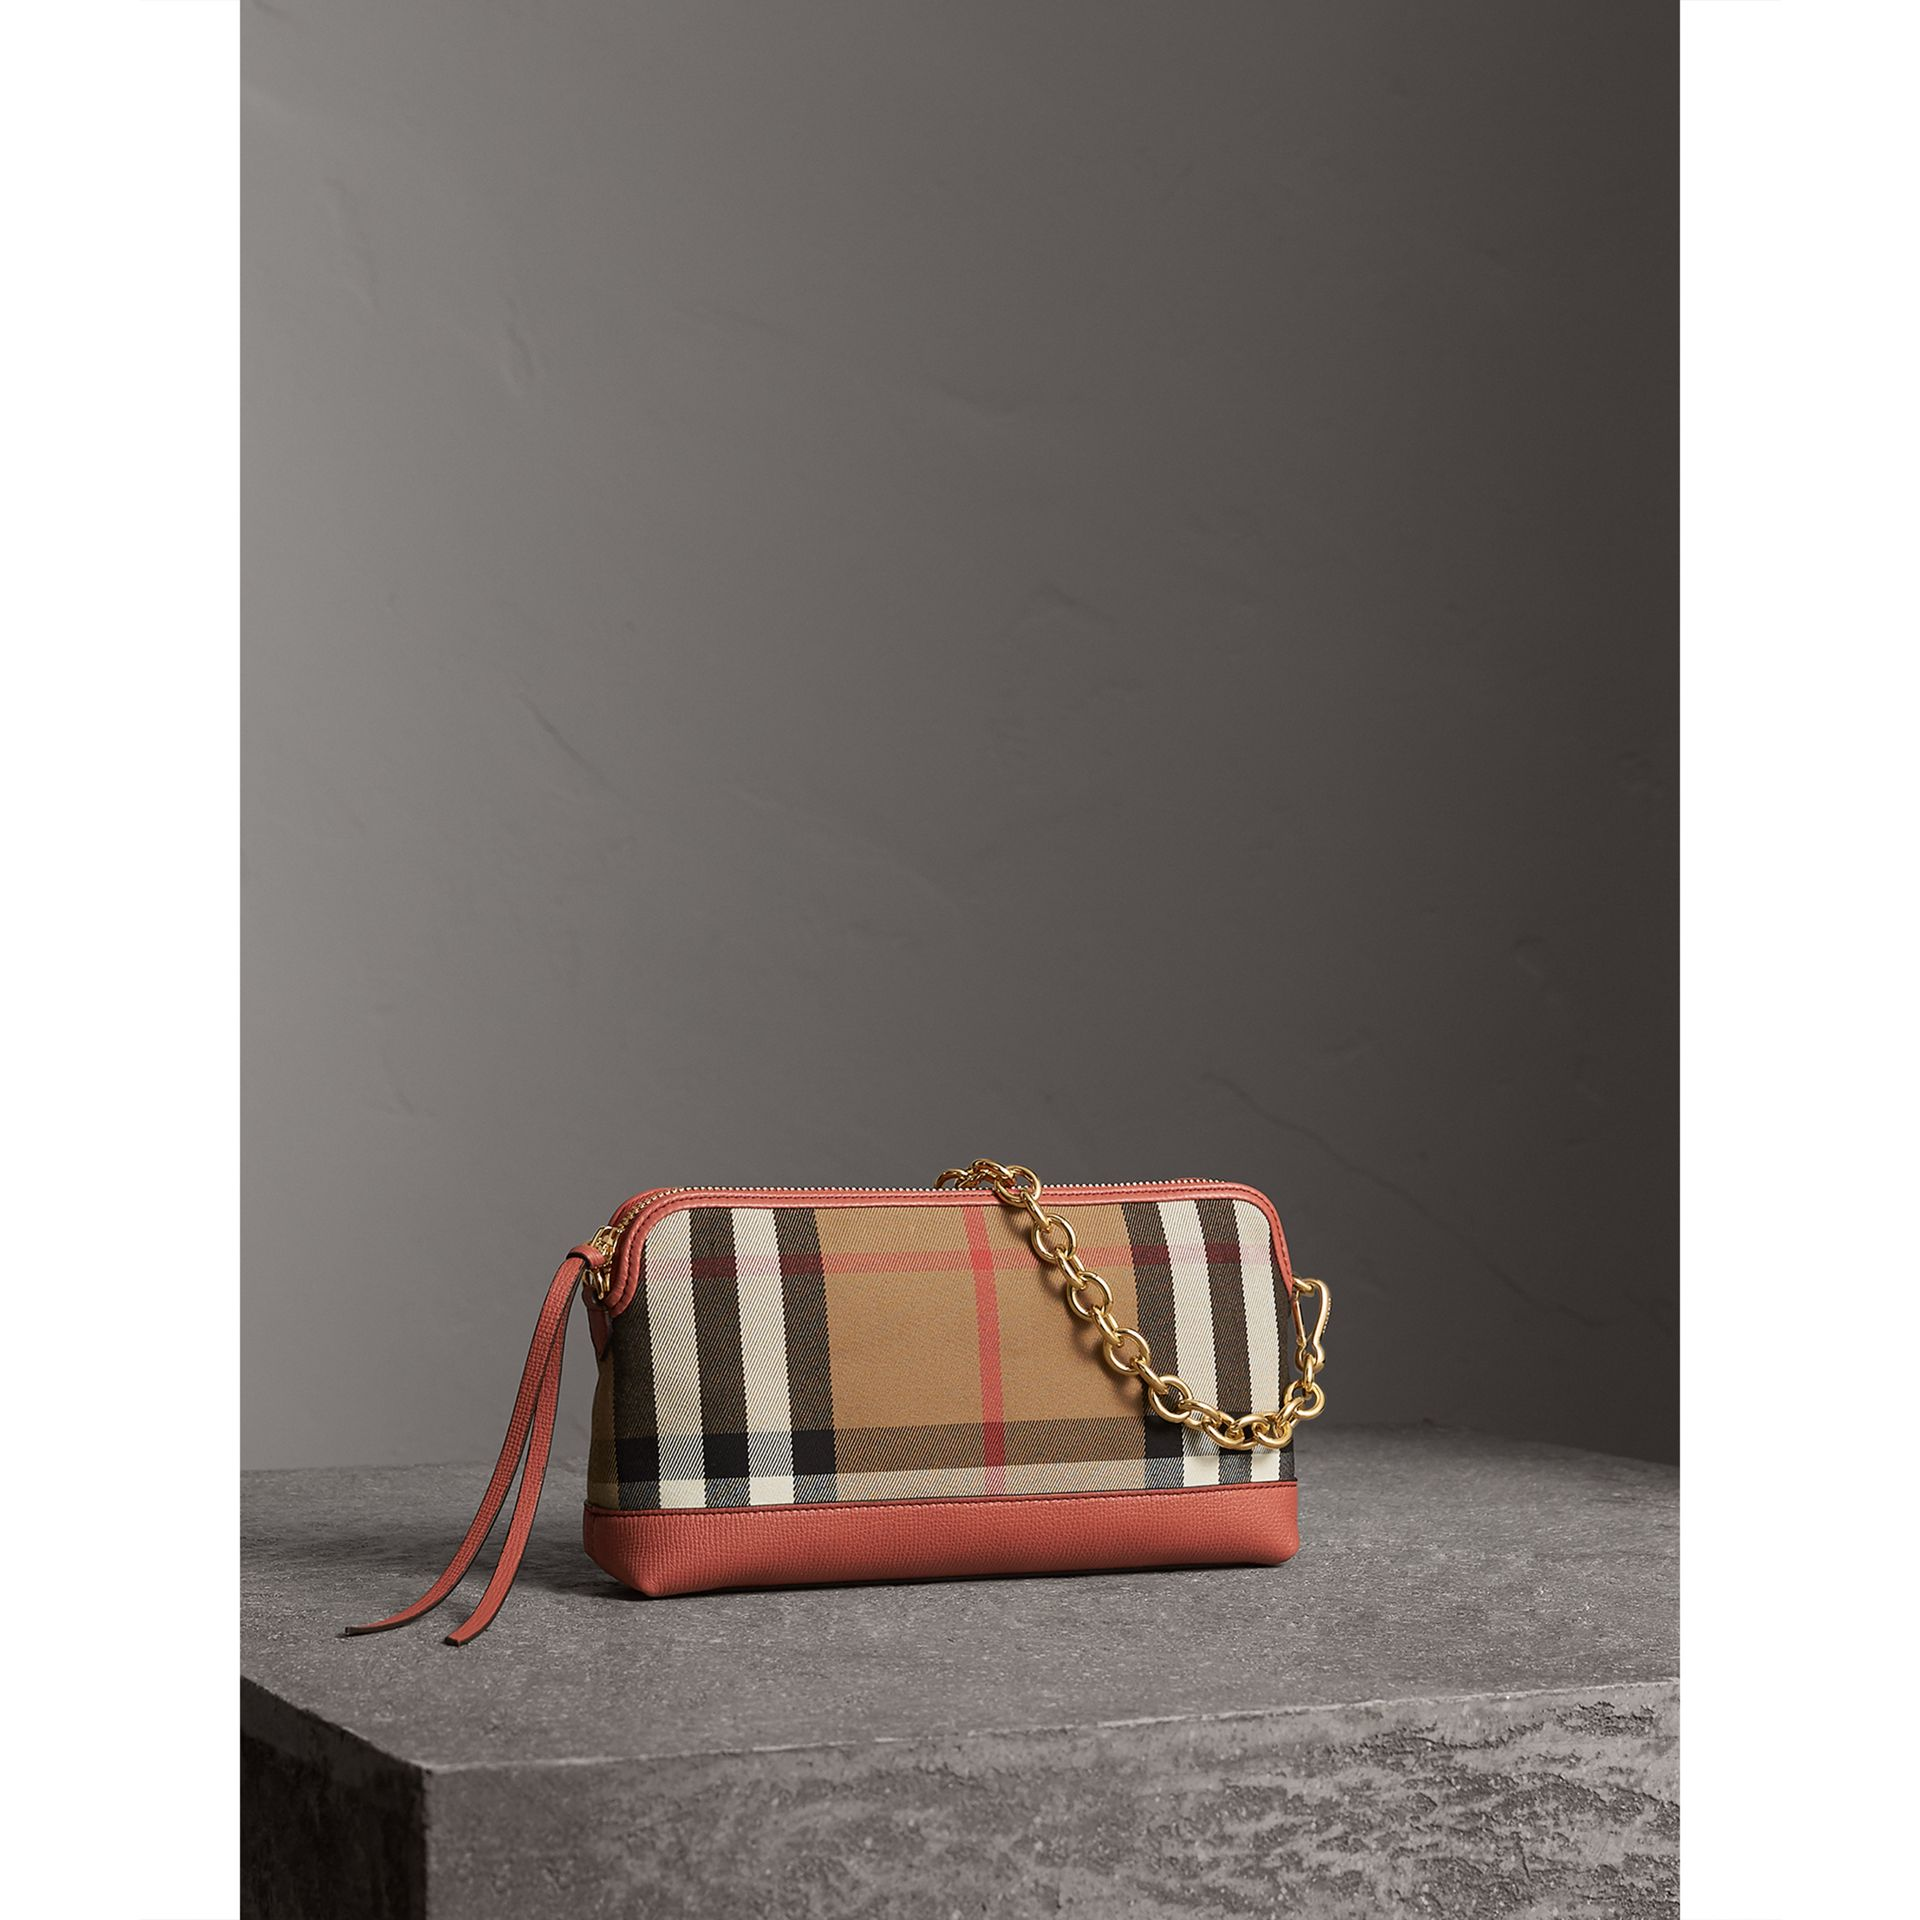 House Check and Leather Clutch Bag in Cinnamon Red - Women | Burberry Singapore - gallery image 8